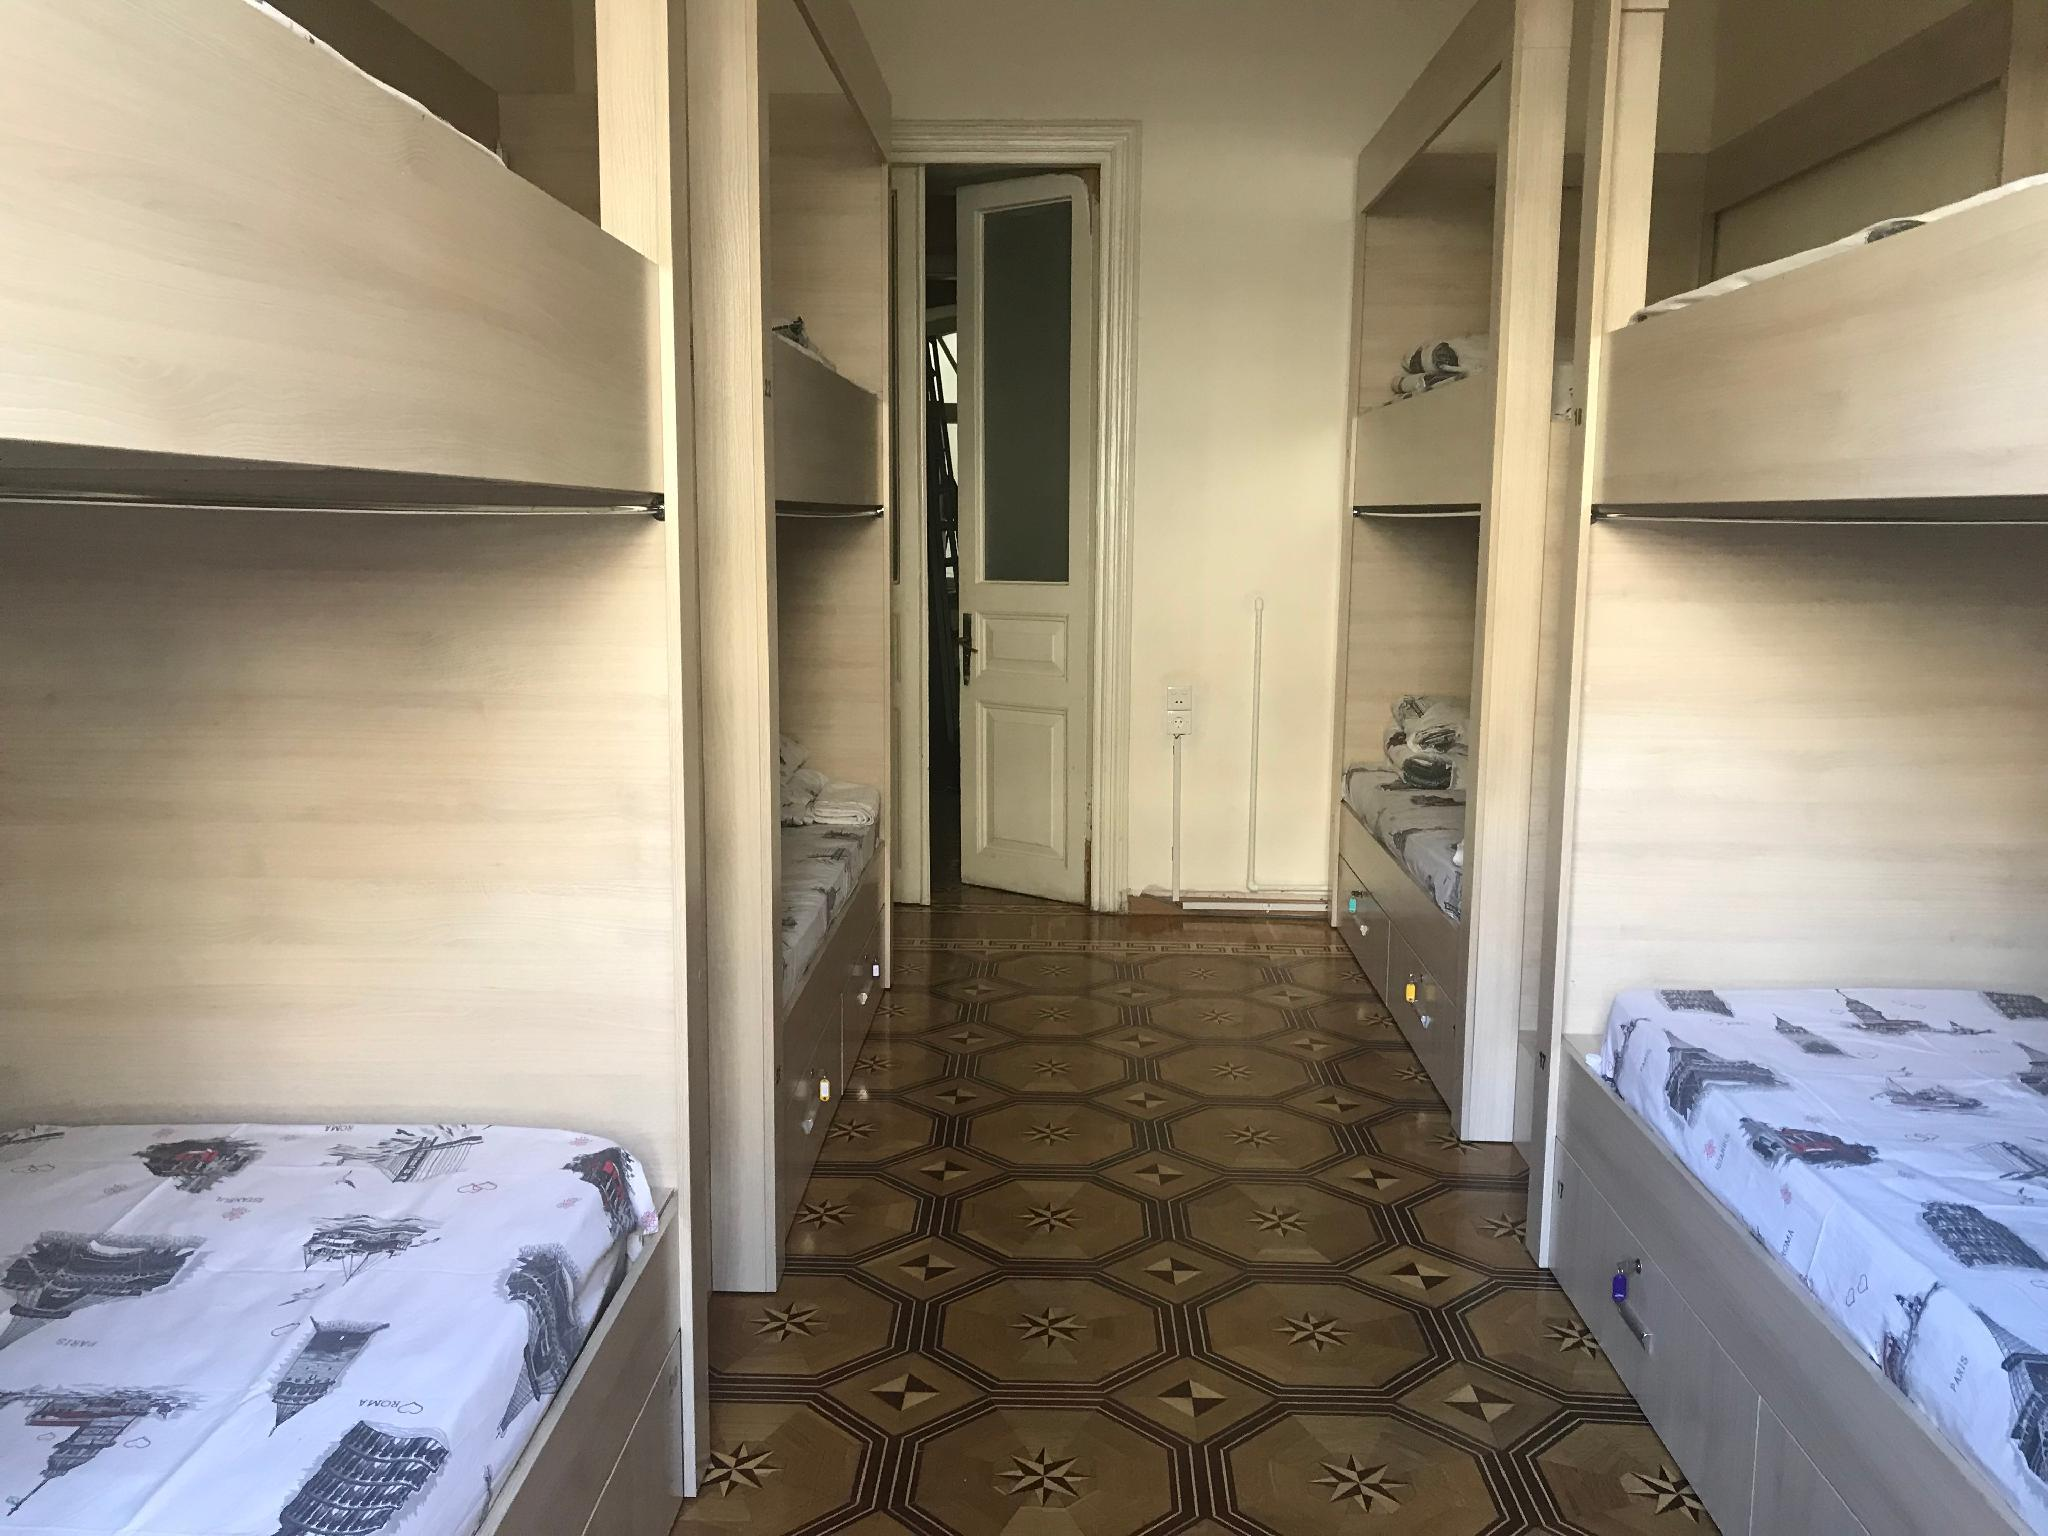 1 persona en habitación compartida básica de 8 camas ‒ Mixta (1 Person in 8-Bed Basic Dormitory - Mixed)